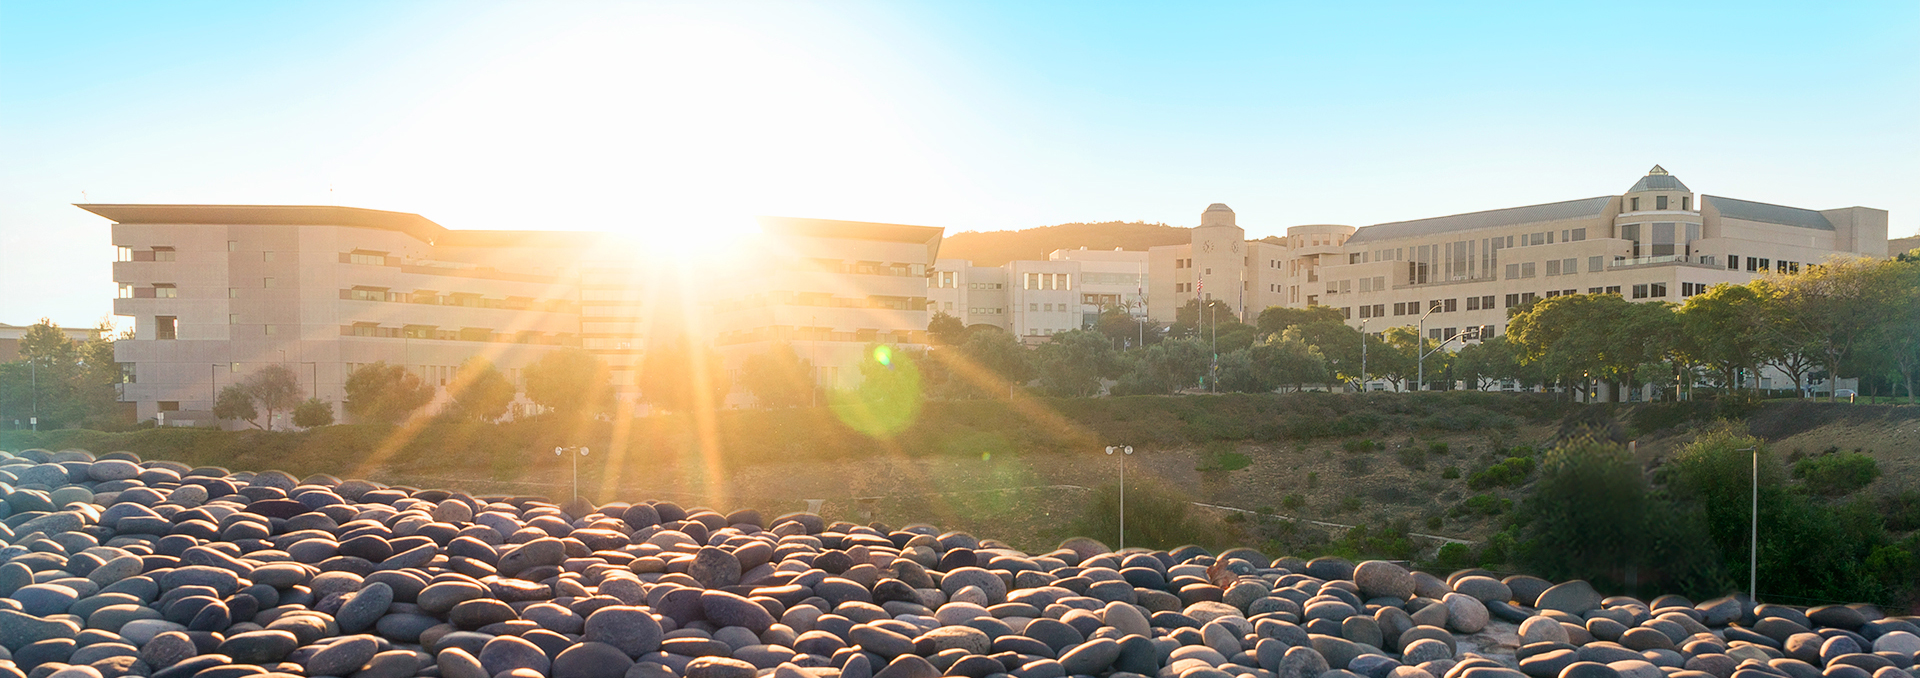 photo of sunrise over CSUSM campus